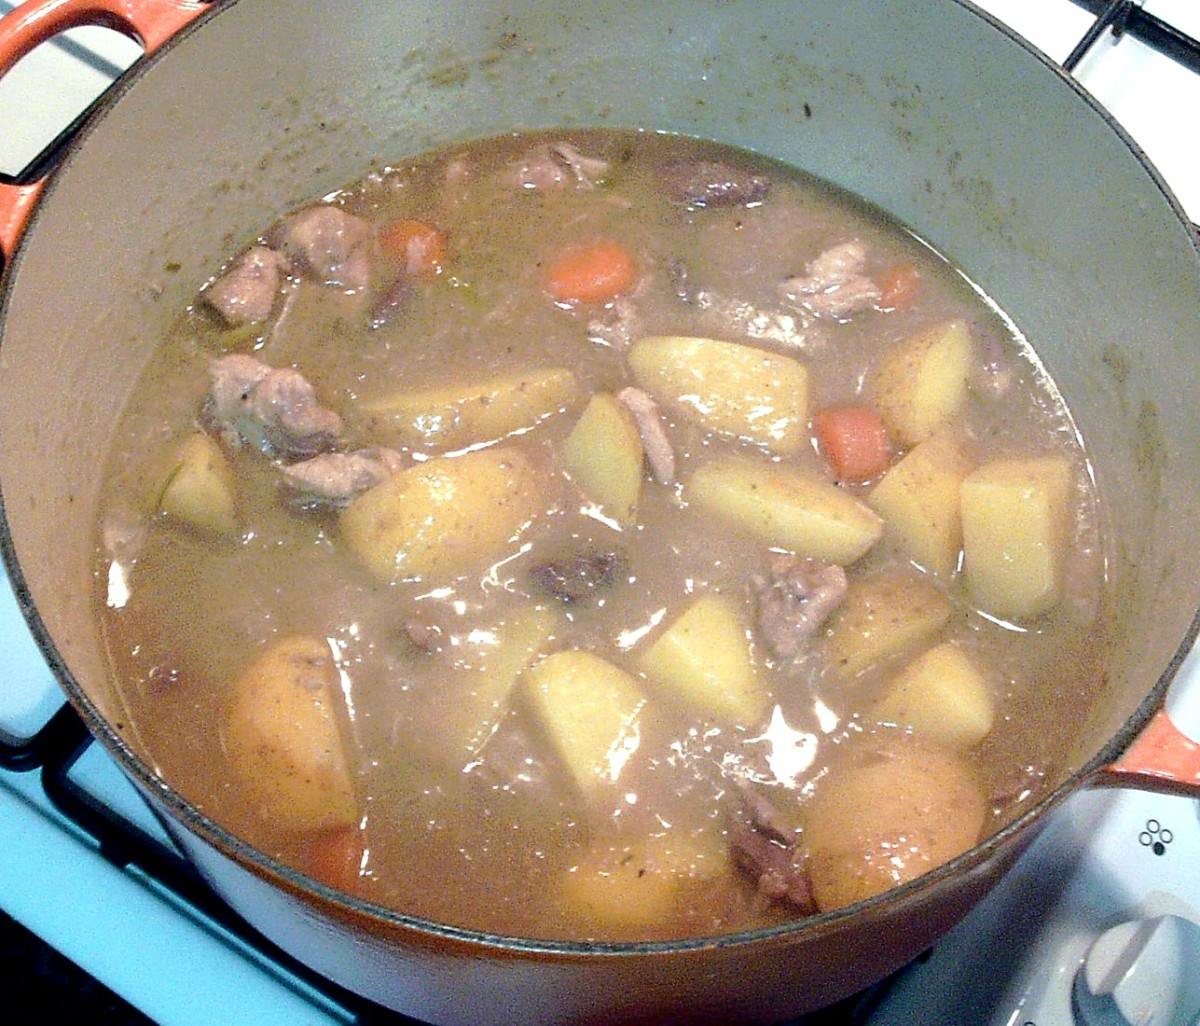 Pheasant, pigeon and woodcock wild game stew is ready to serve